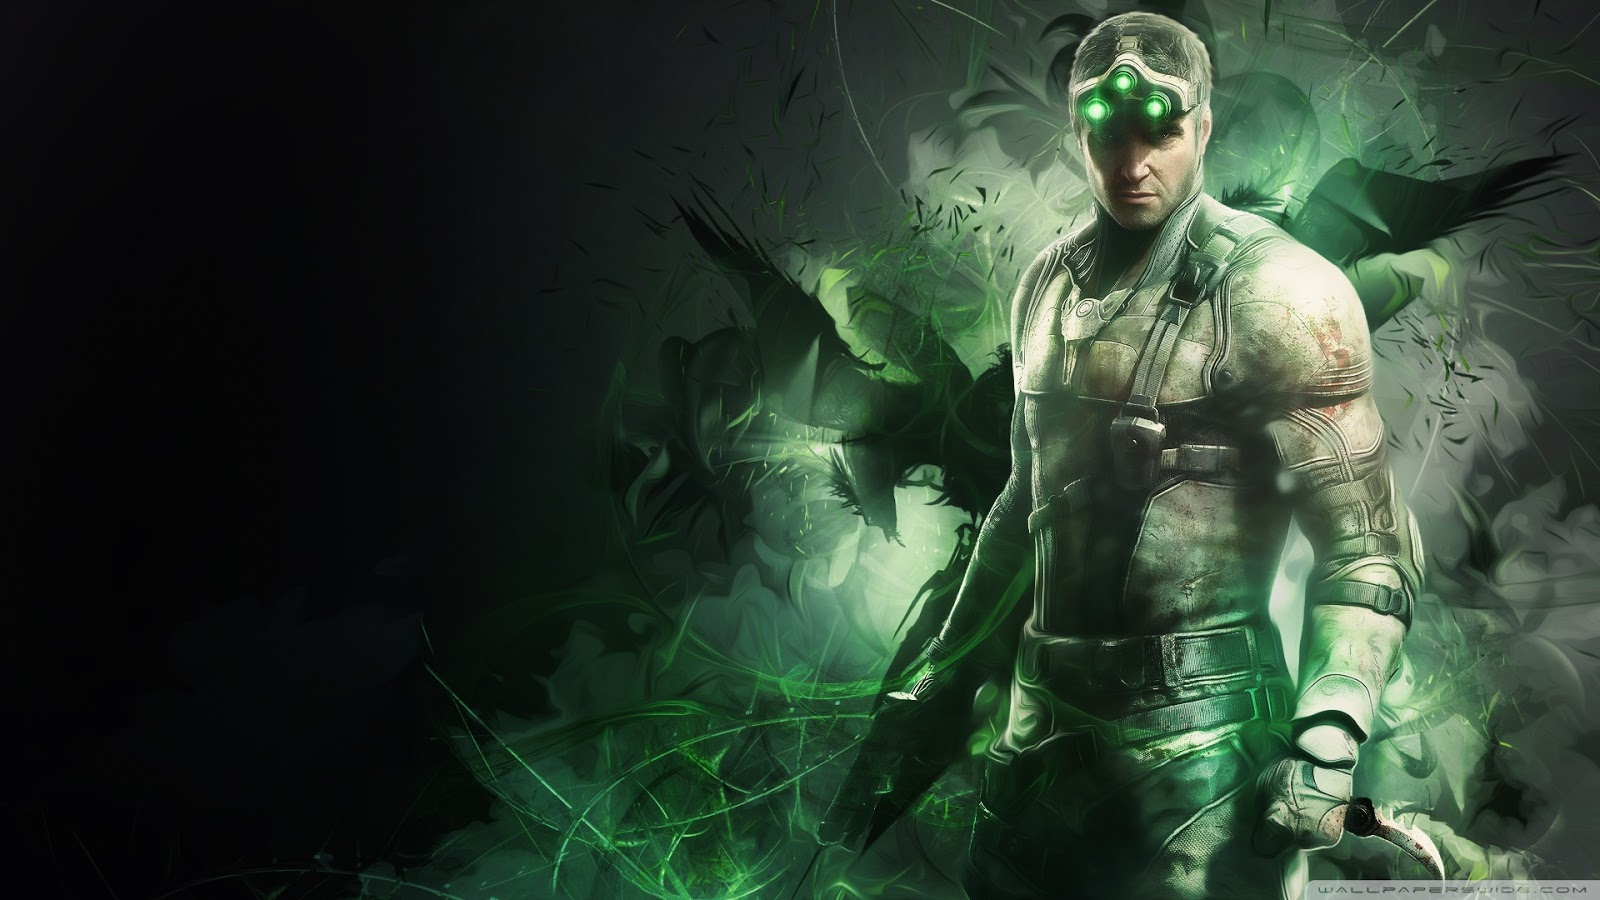 tom_clancys_splinter_cell_blacklist-wallpaper-1920x1080